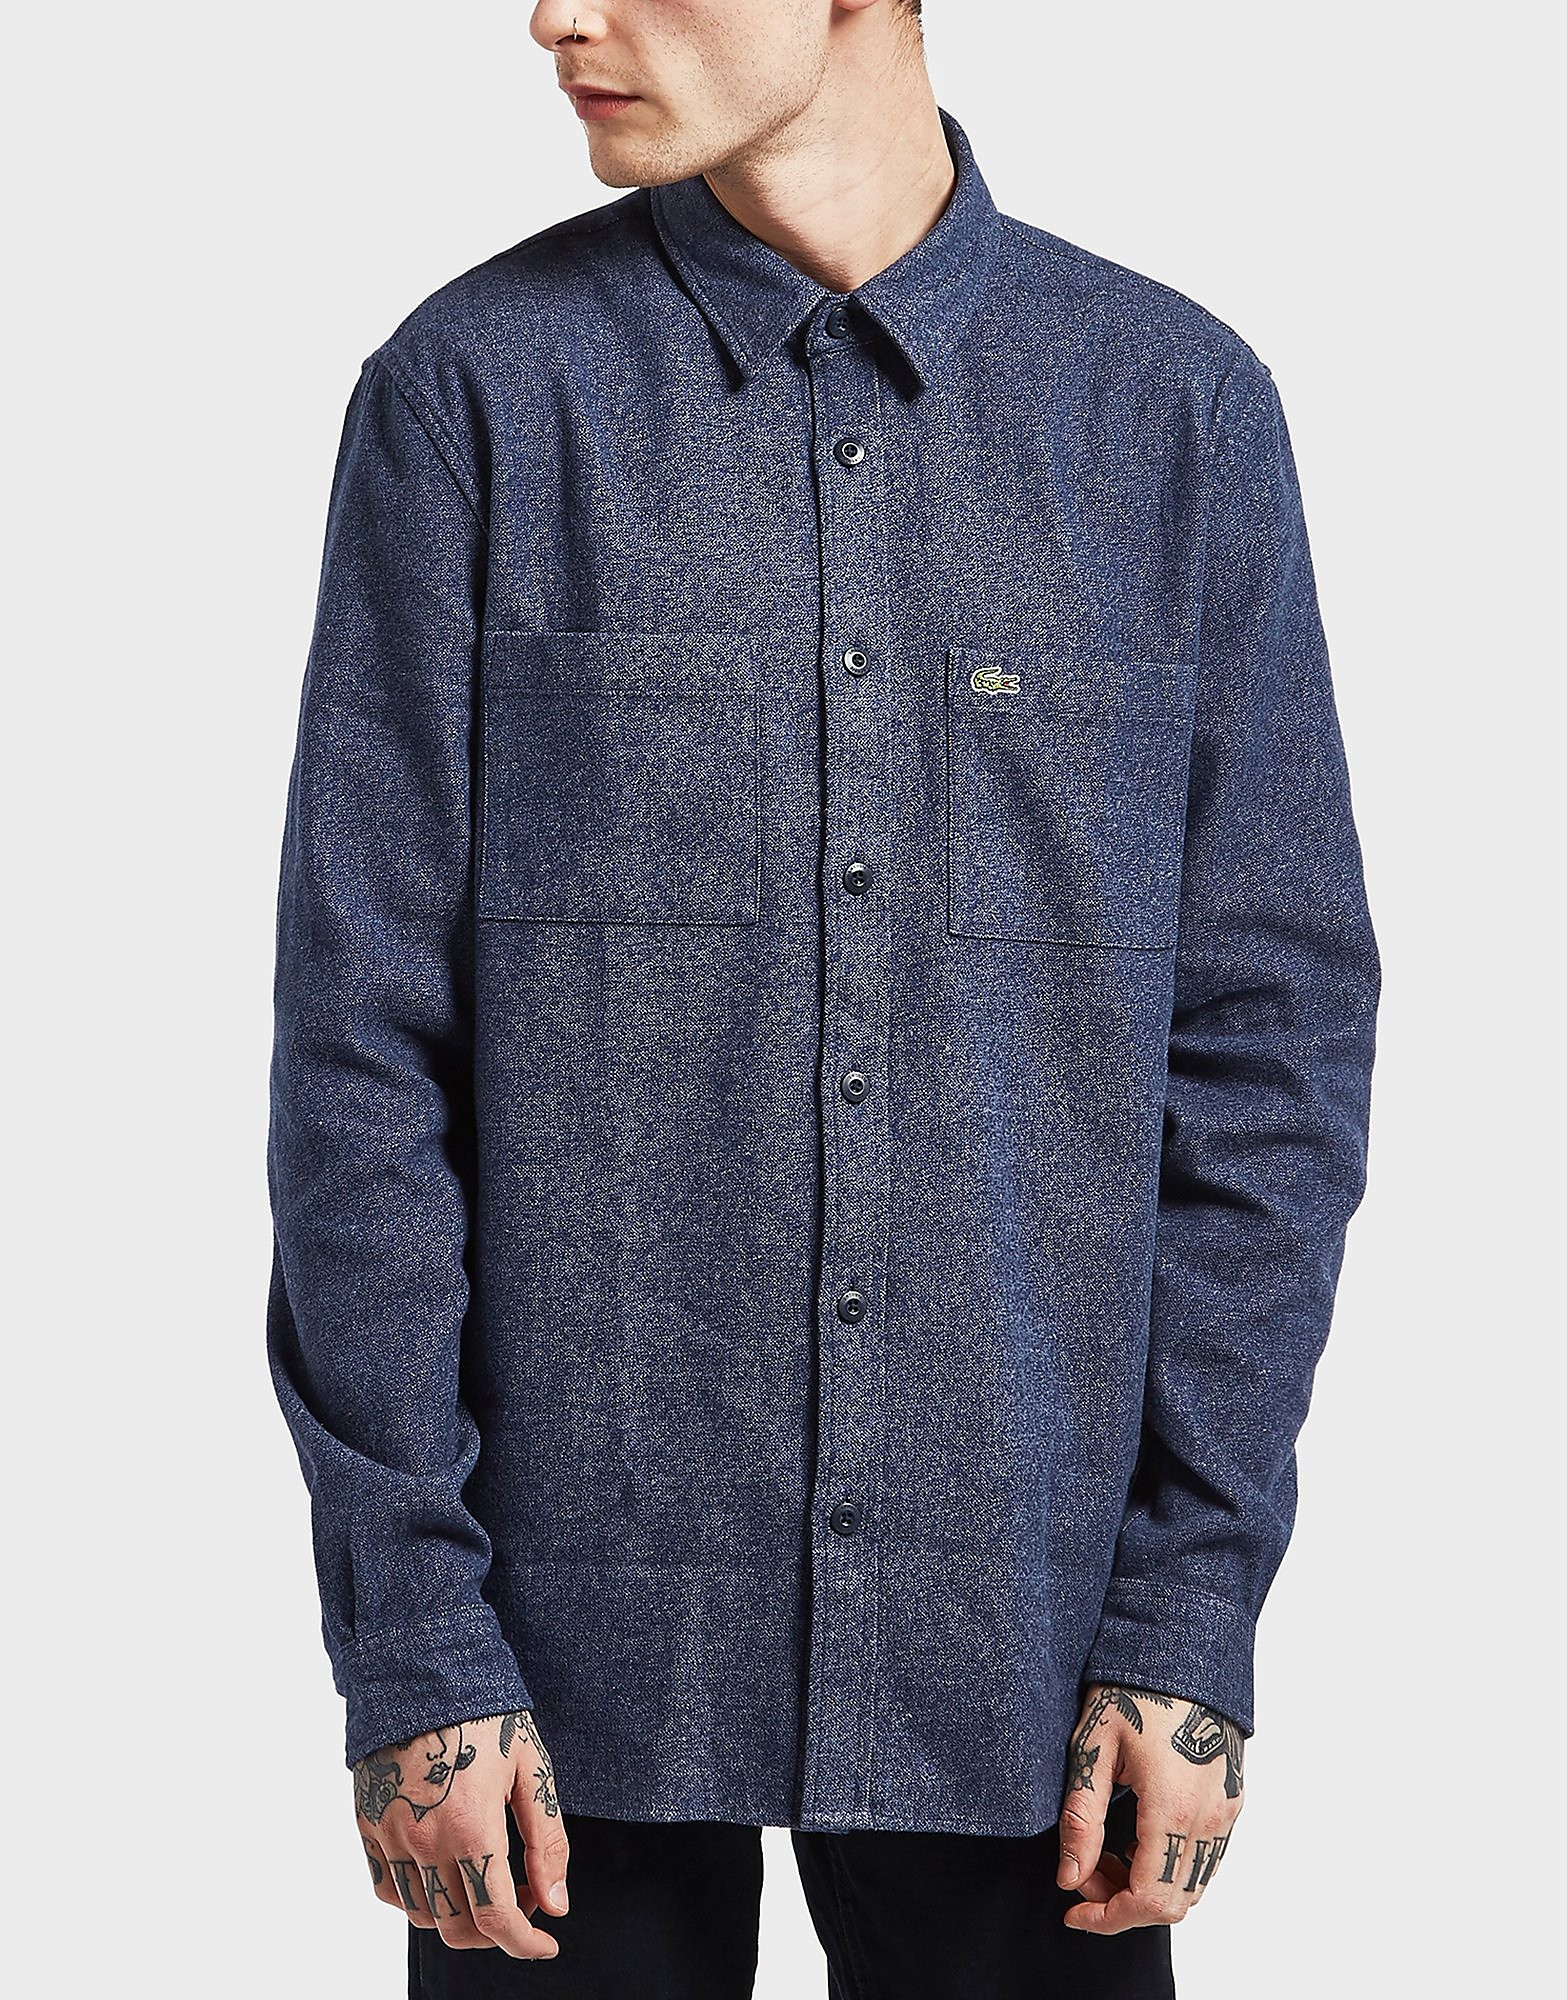 Lacoste Flannel Overshirt